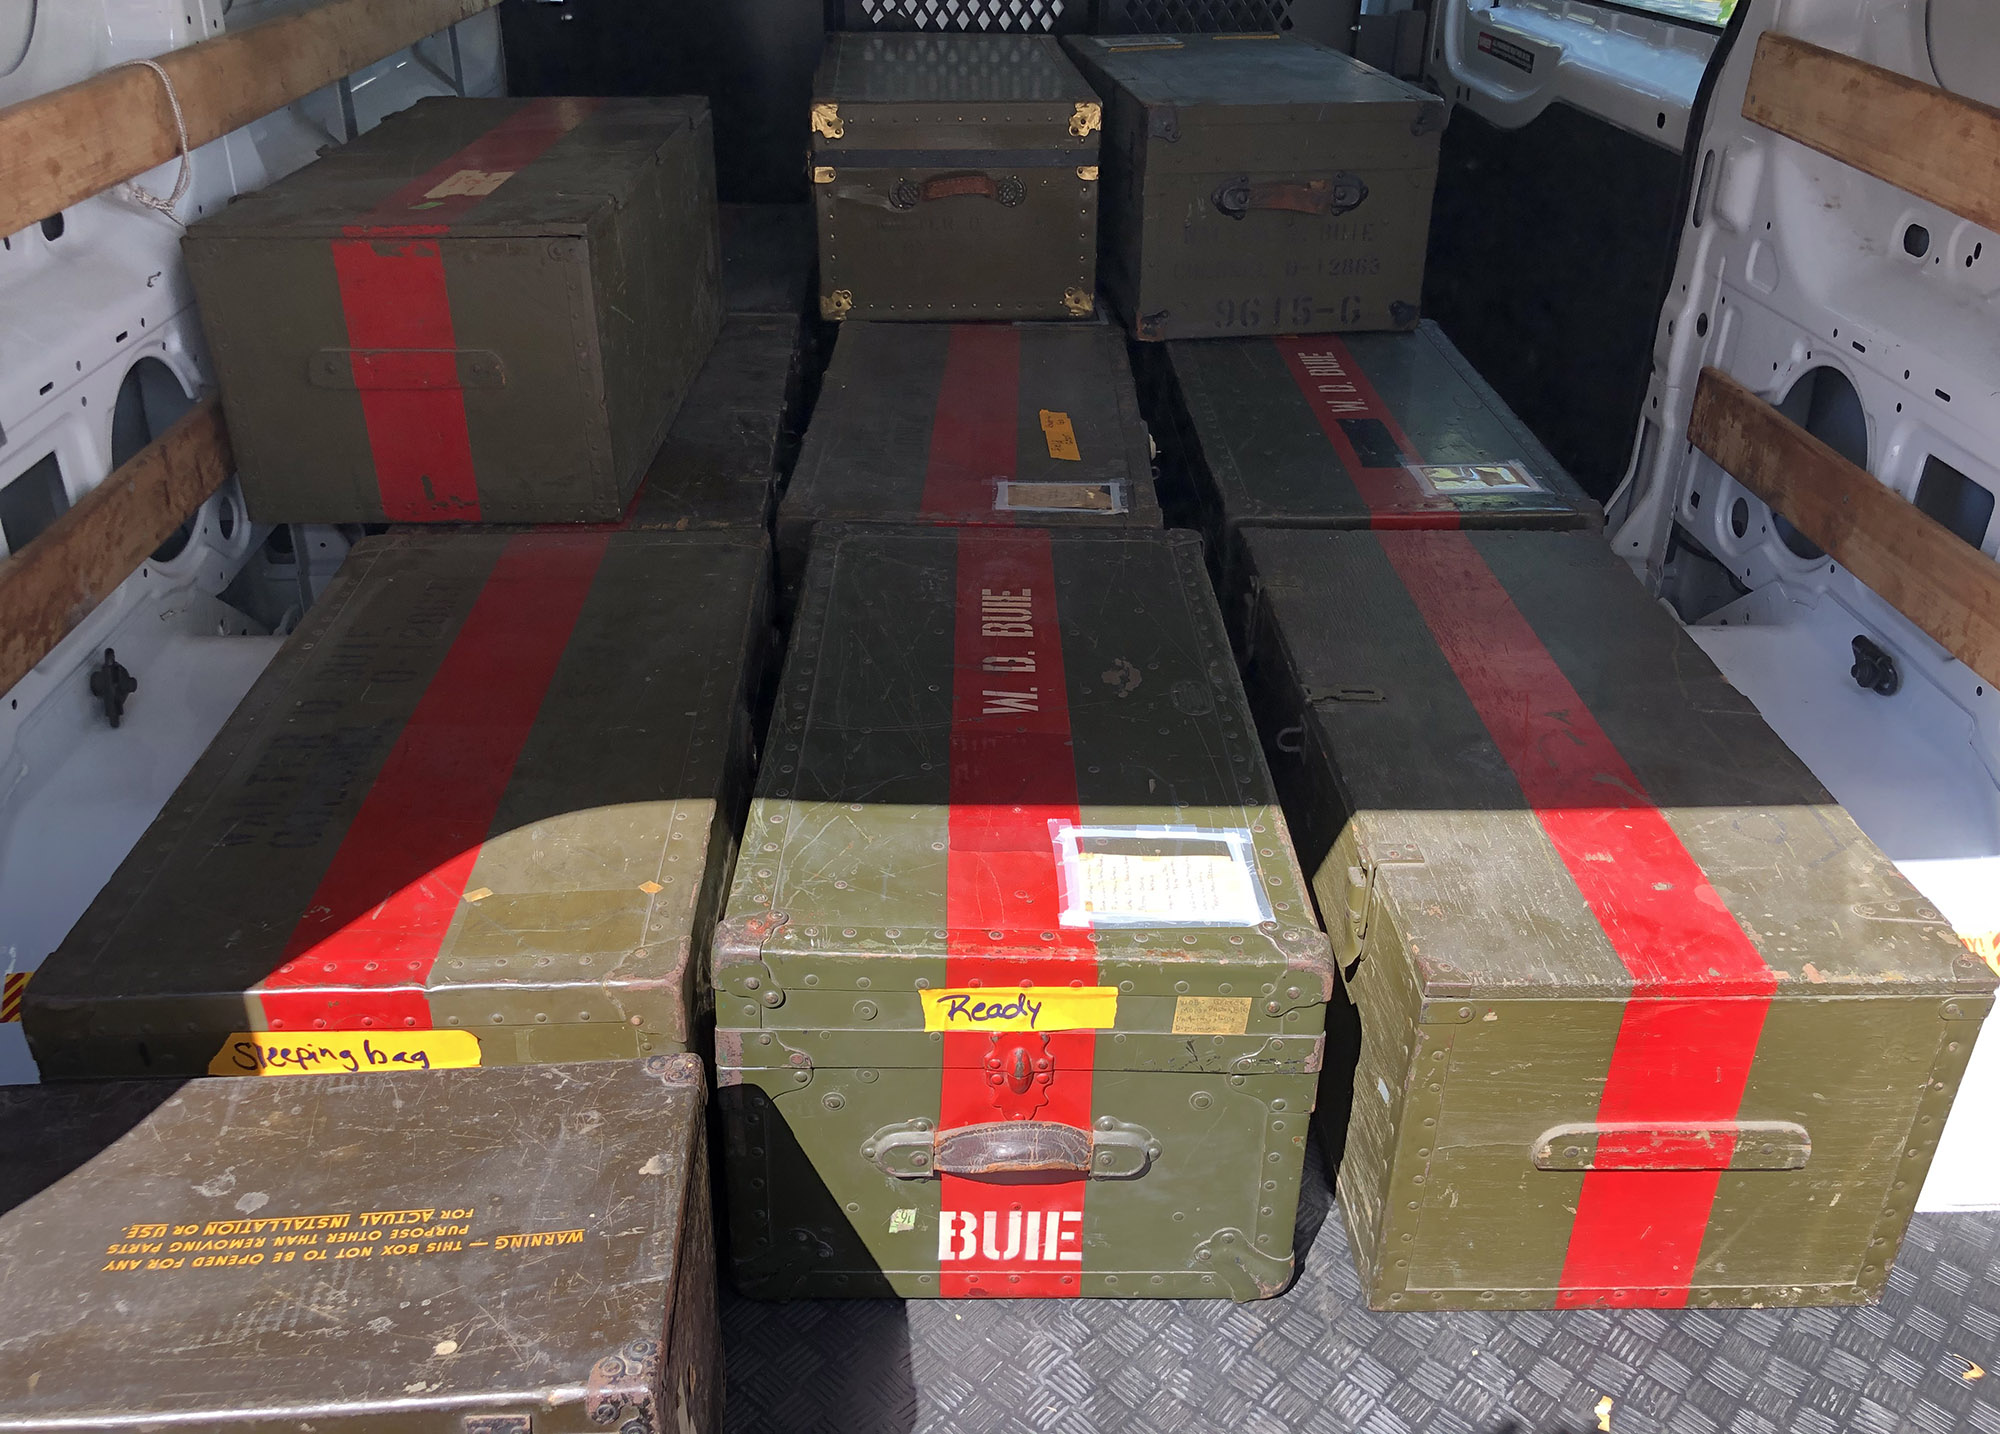 Colonel Walter Buie   WWII War Trophy Collection Stored in Original Period Trunks